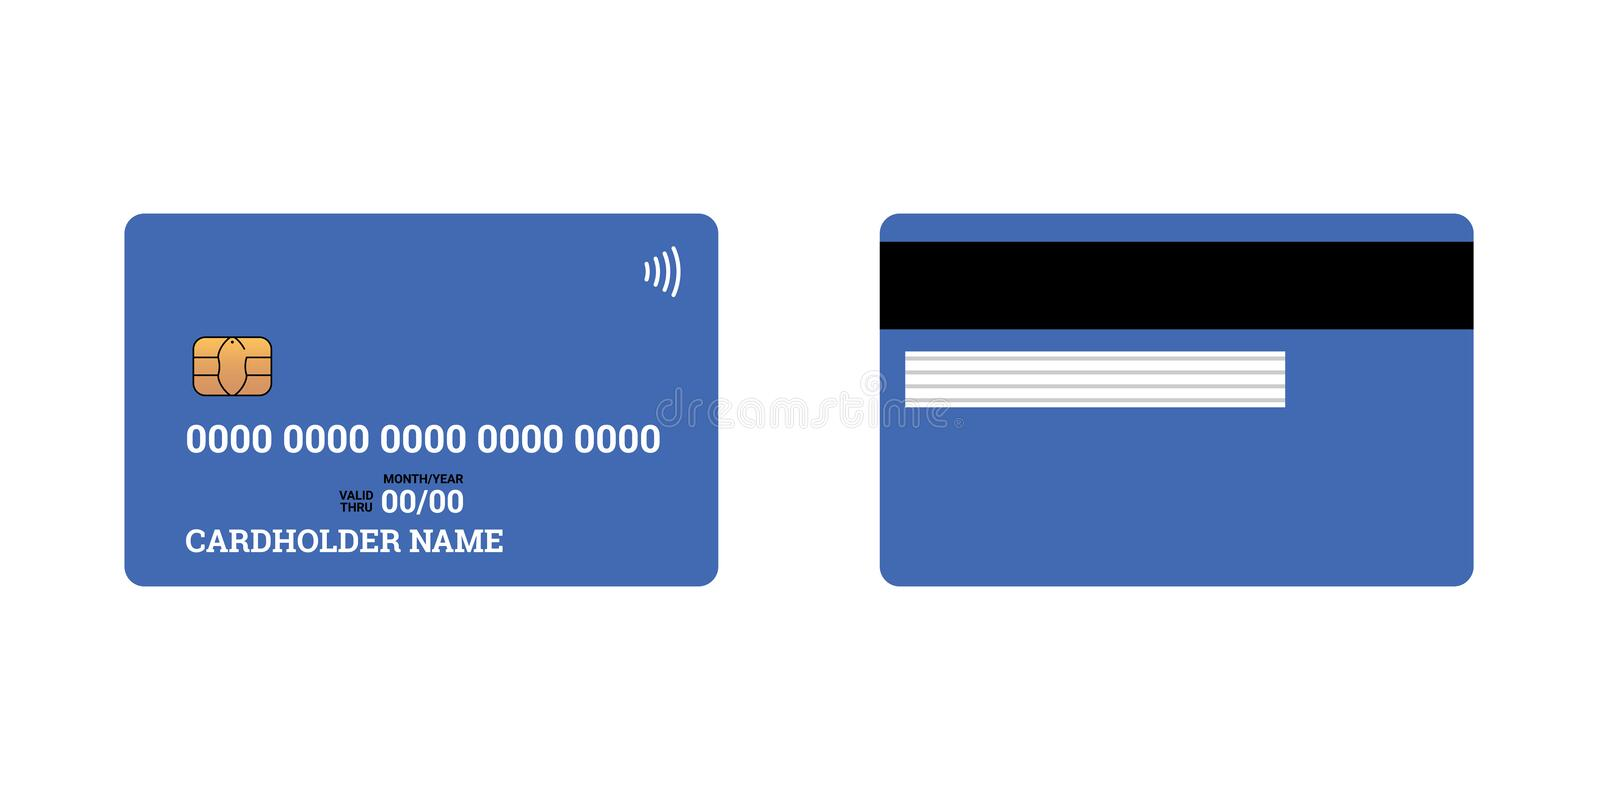 Bank plastic credit or debit contactless smart charge card front and back sides with EMV chip and magnetic stripe. Blank vector illustration